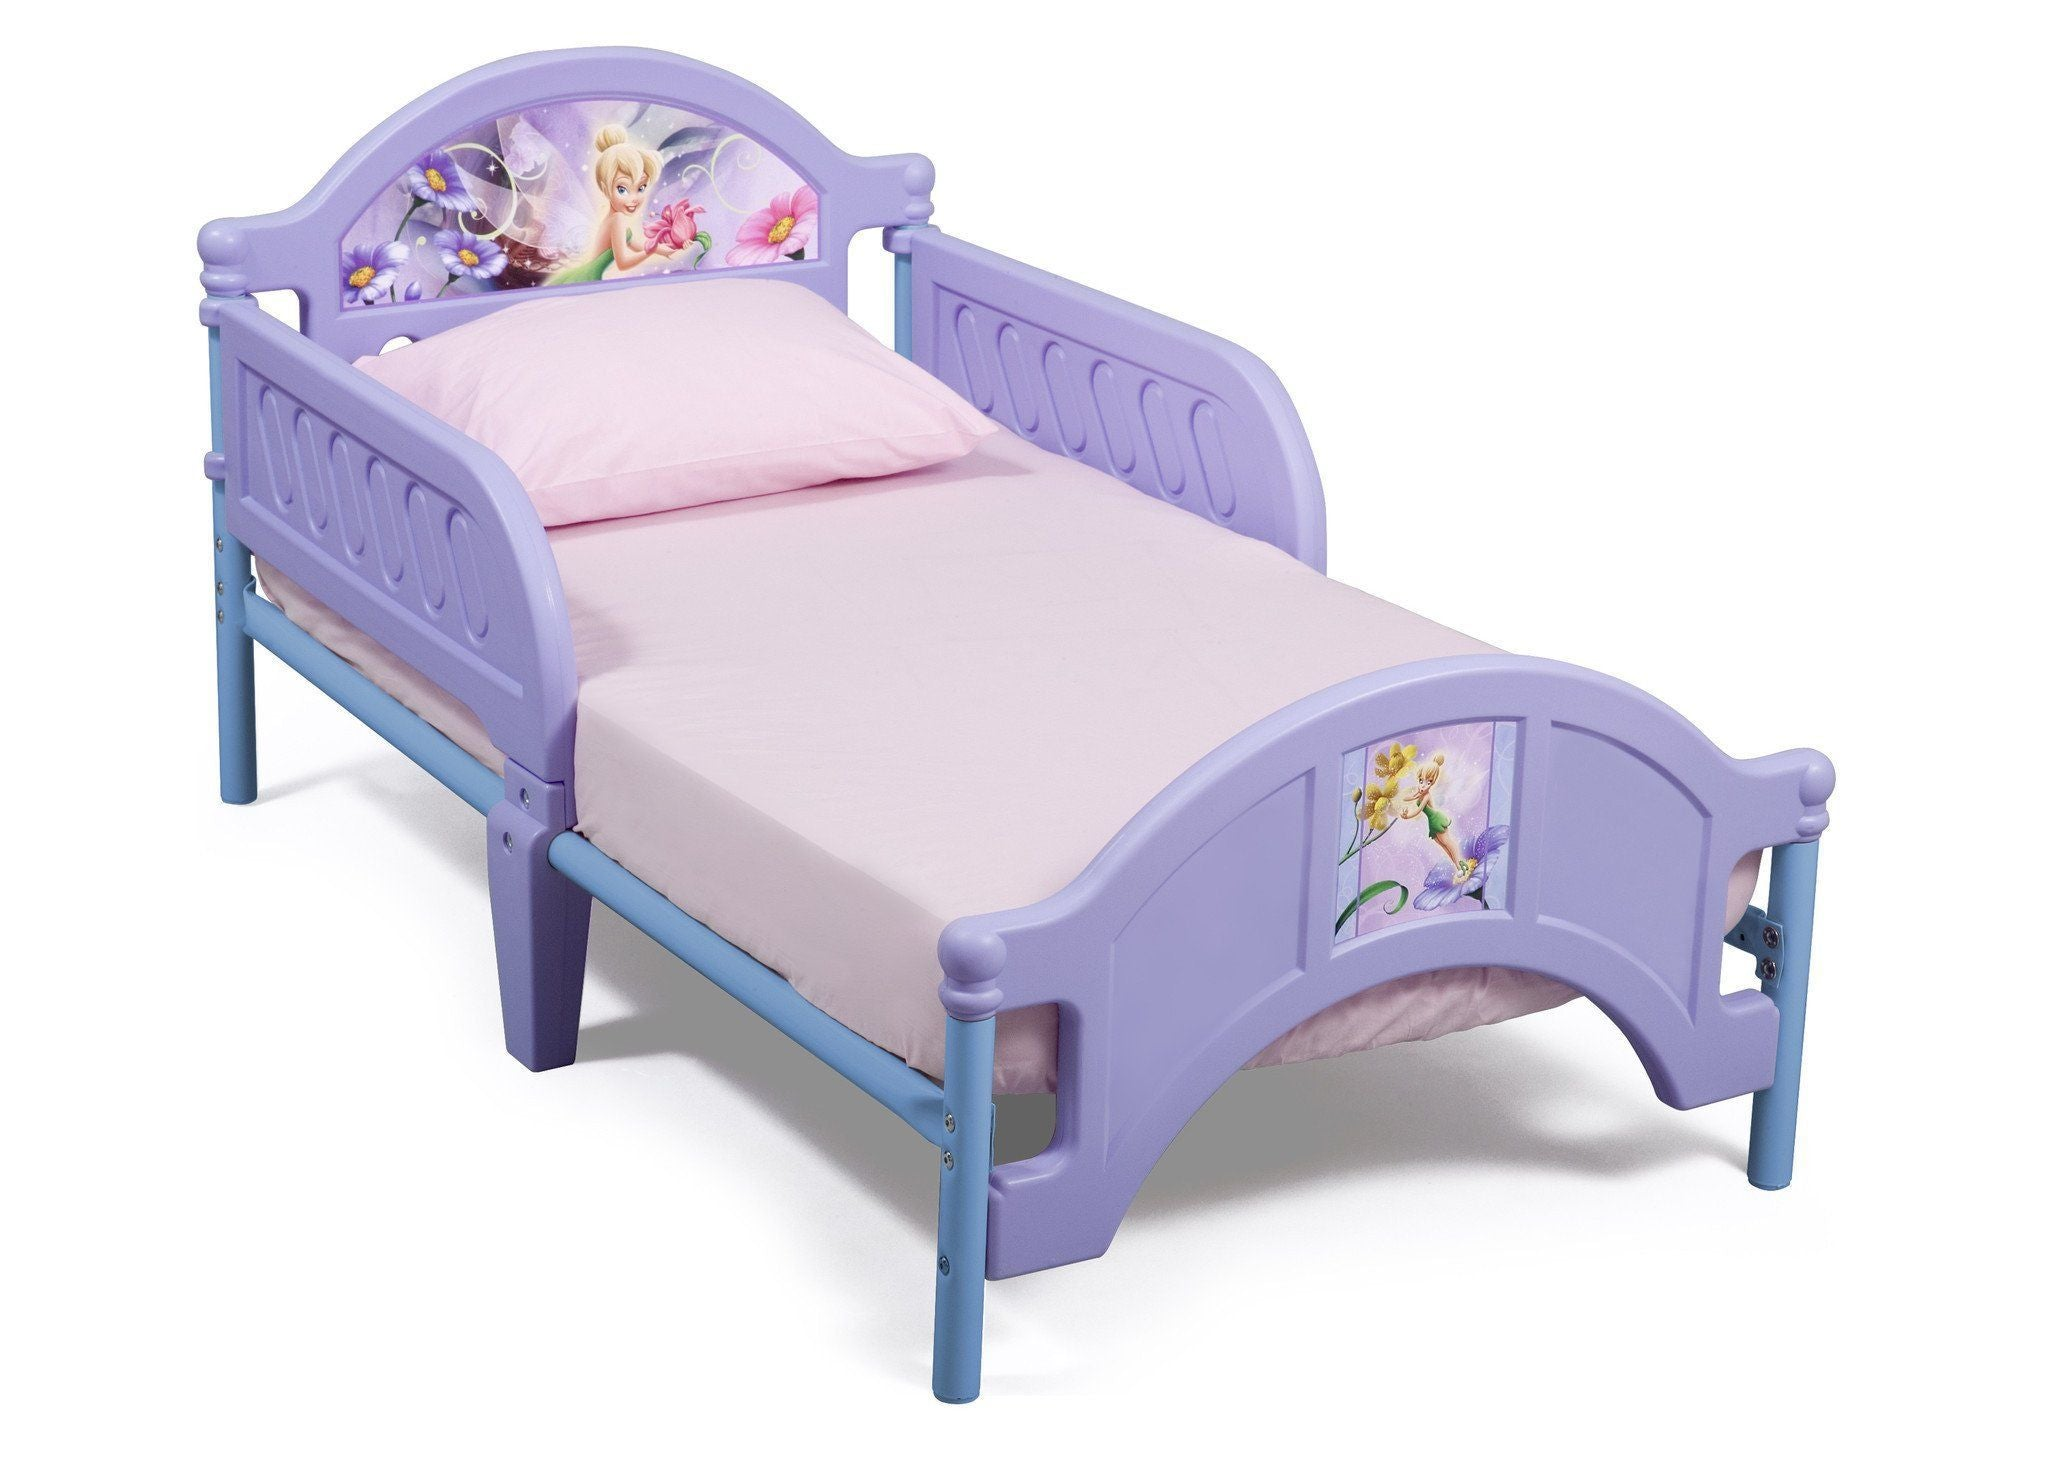 Delta Children Style 1 Fairies Toddler Bed, Right View a1a